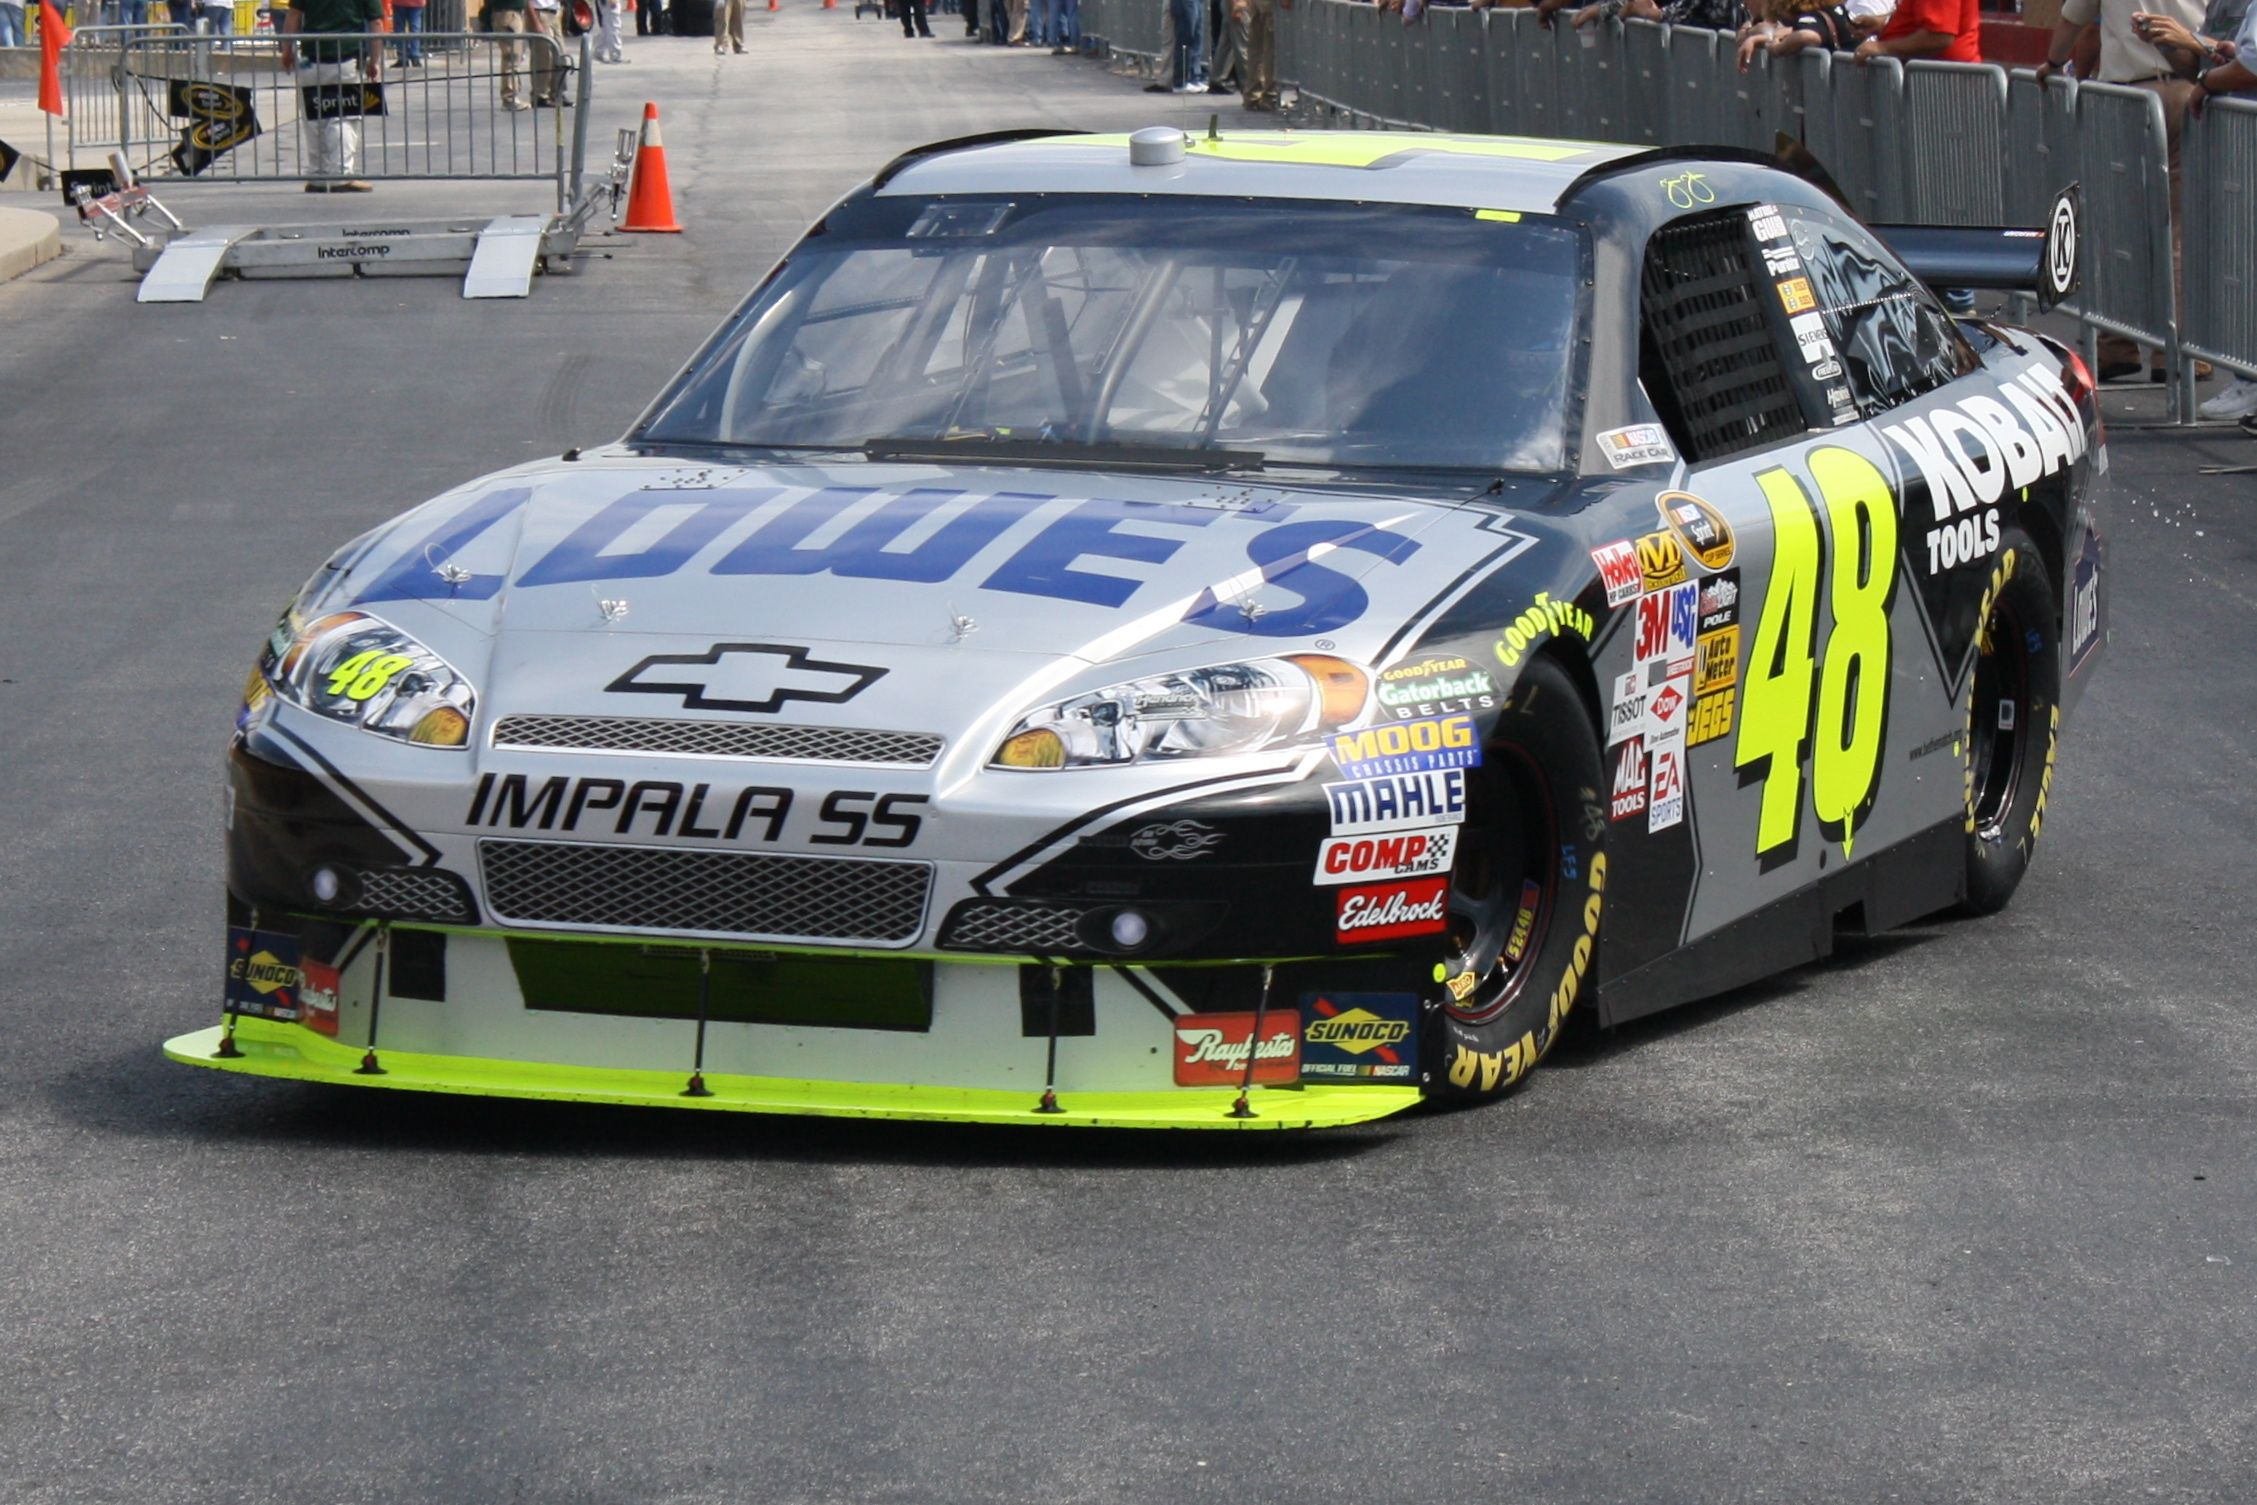 Th Best Of The Best Nascar Cup Series Nascar Monster Energy Nascar Cup Series